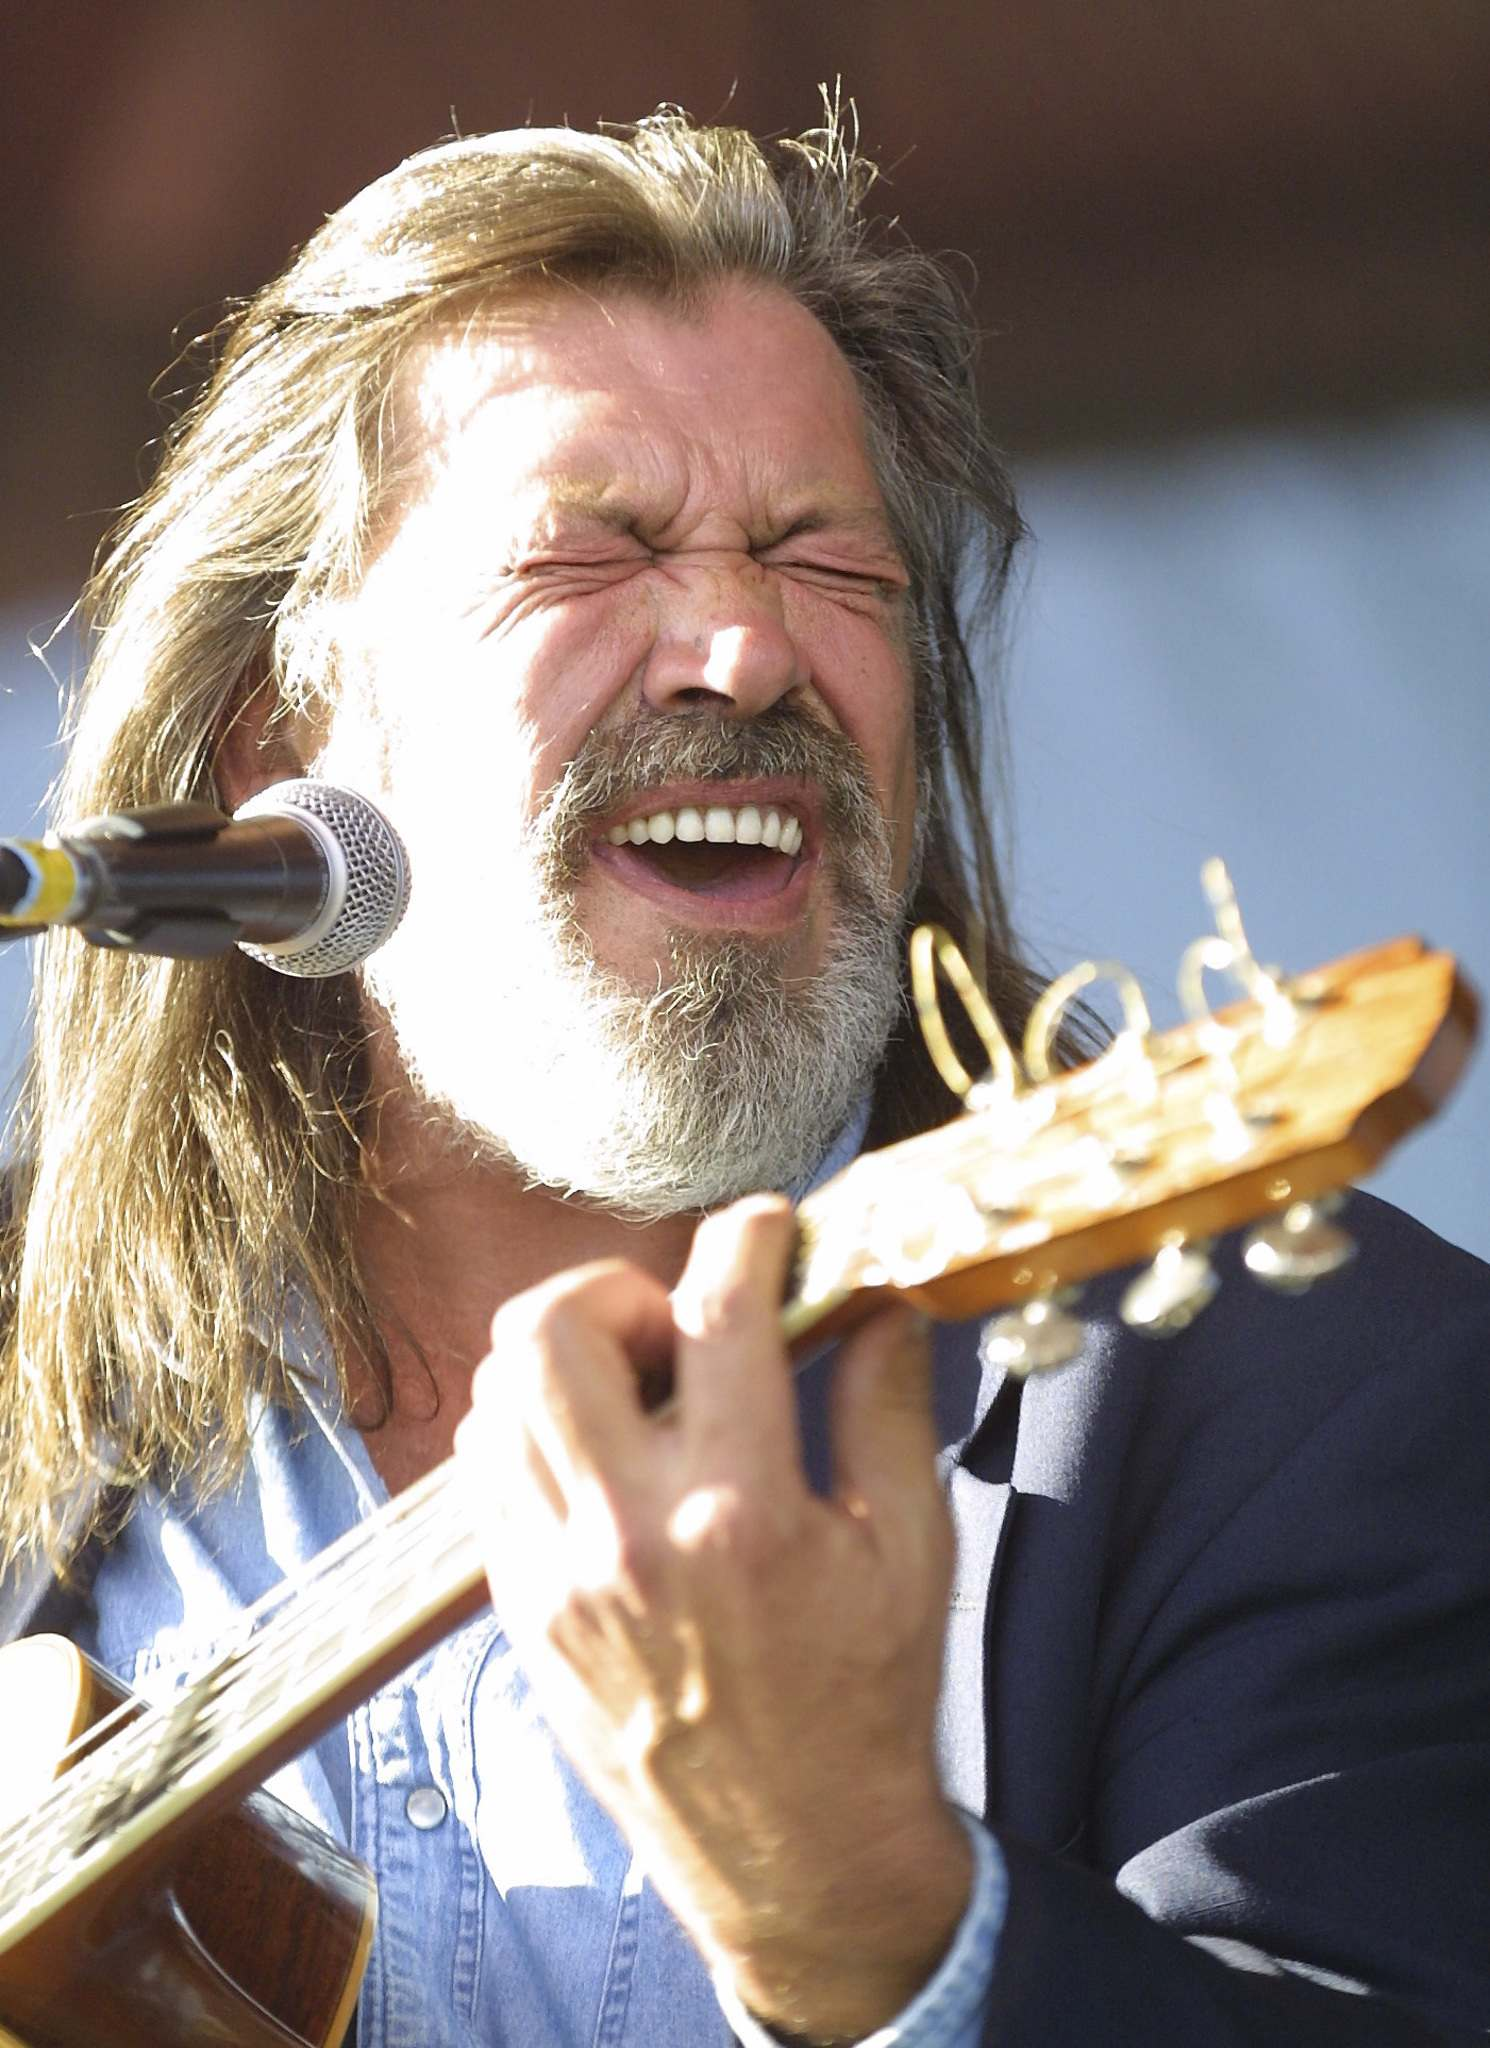 JOE BRYKSA / WINNIPEG FREE PRESS FILES</p><p>Greg Leskiw performs at the Muddy Rivers Music Festival at The Forks in August 2001.</p></p>